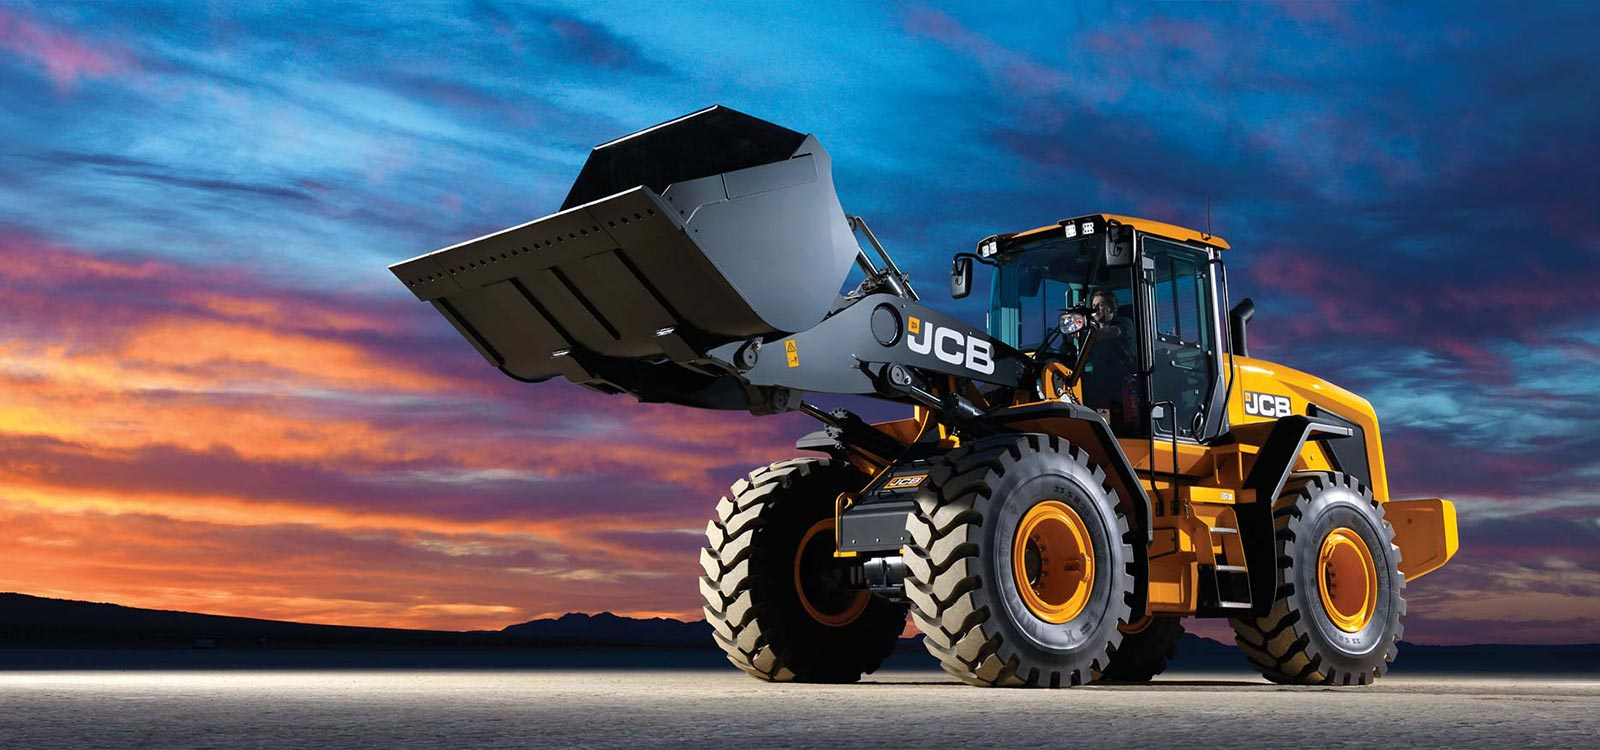 JCB Construction Equipment